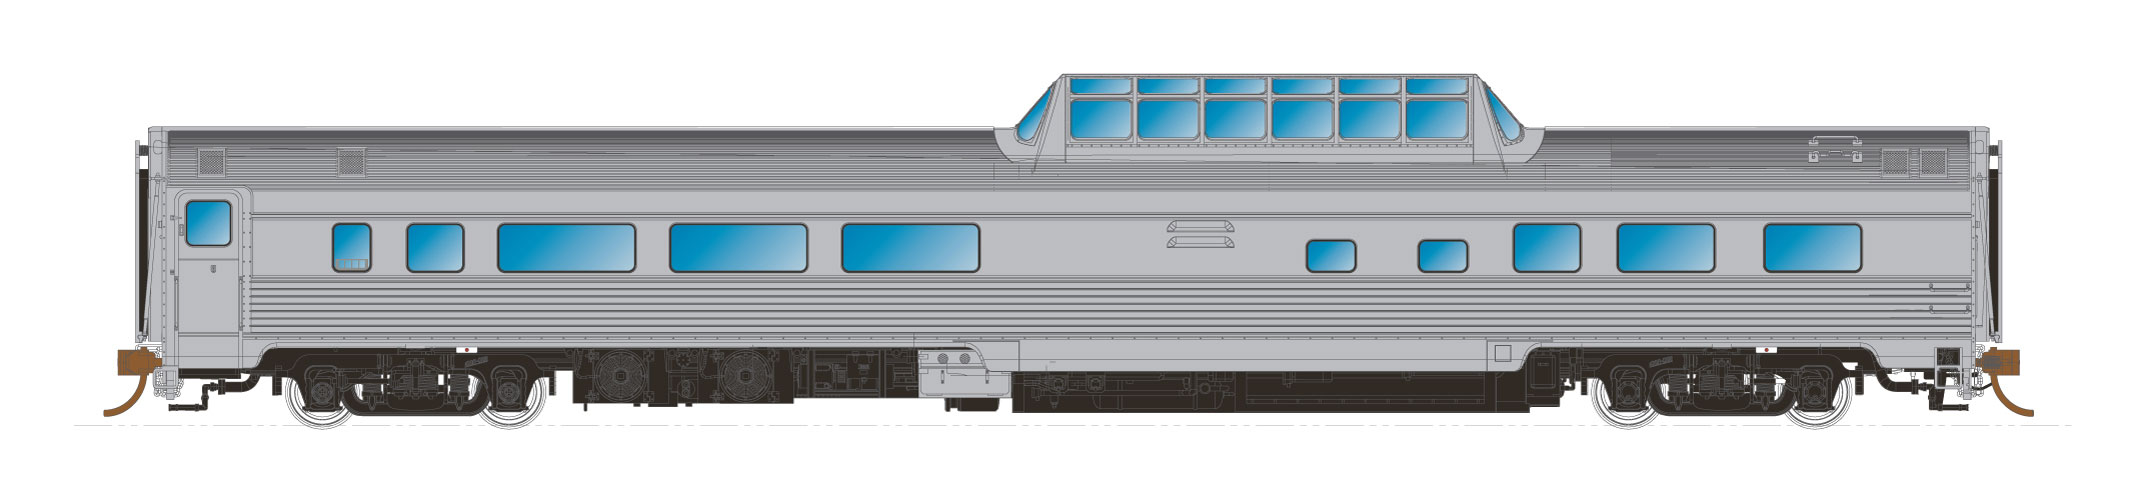 N Scale - Rapido Trains - 550115 - Passenger Car, Budd, Lightweight Coach - Undecorated